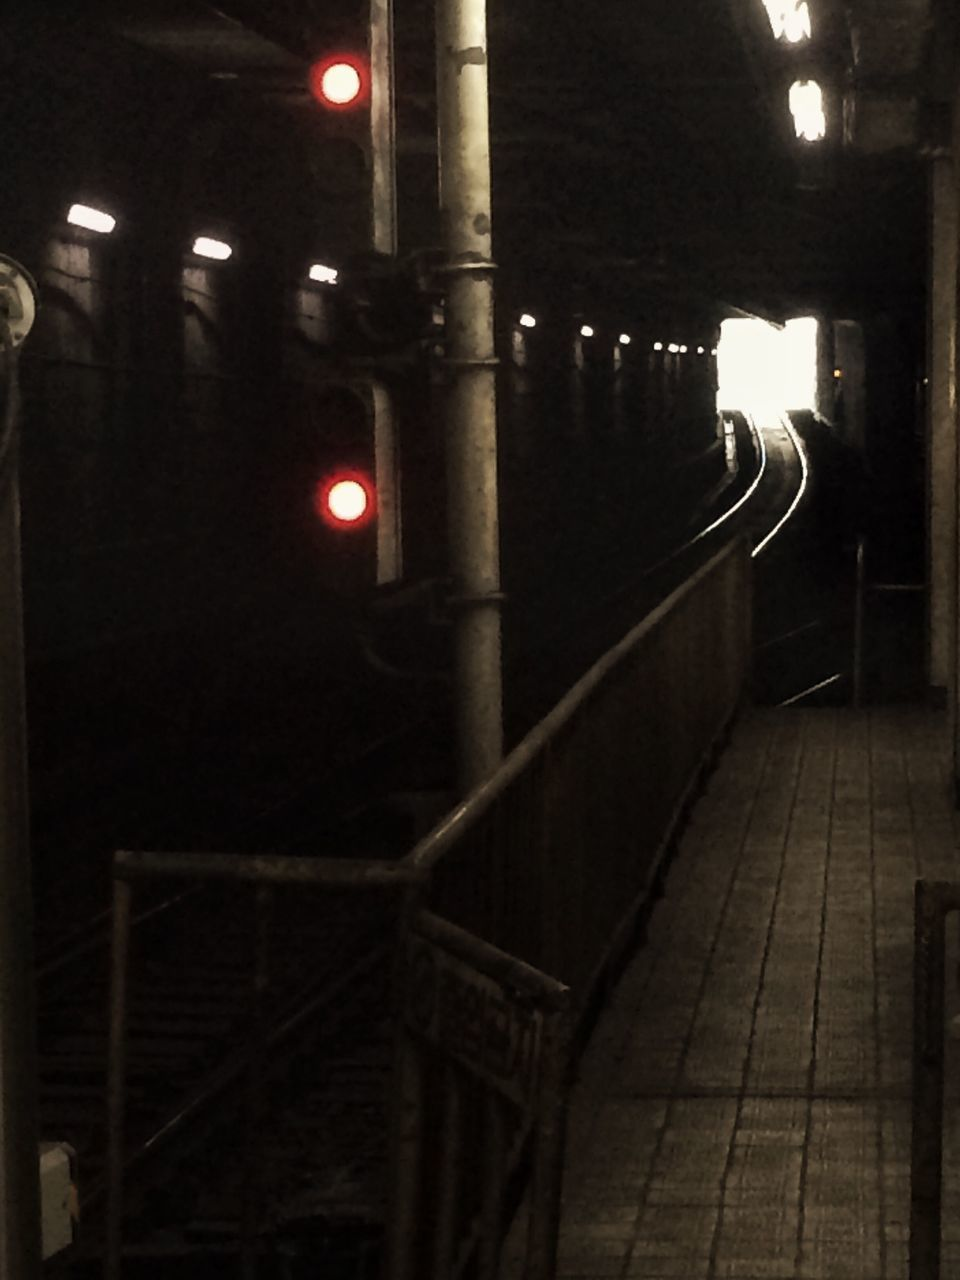 illuminated, night, the way forward, built structure, lighting equipment, architecture, street light, railing, transportation, diminishing perspective, railroad station platform, indoors, empty, railroad station, electric light, railroad track, light - natural phenomenon, building exterior, vanishing point, architectural column